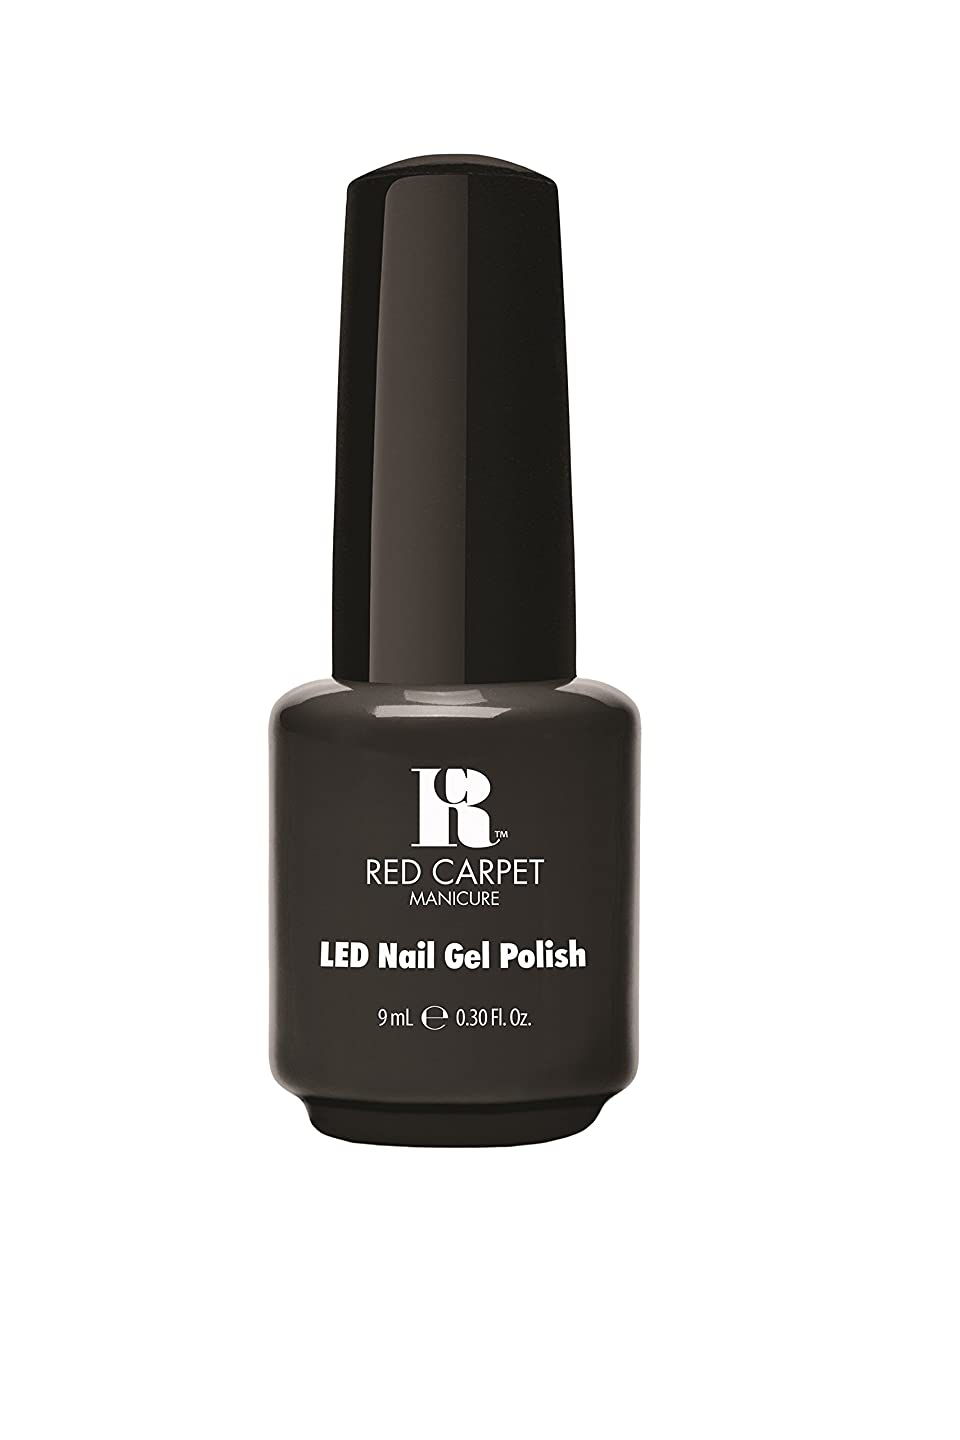 消える繊維立派なRed Carpet Manicure - LED Nail Gel Polish - Secret Society - 0.3oz/9ml